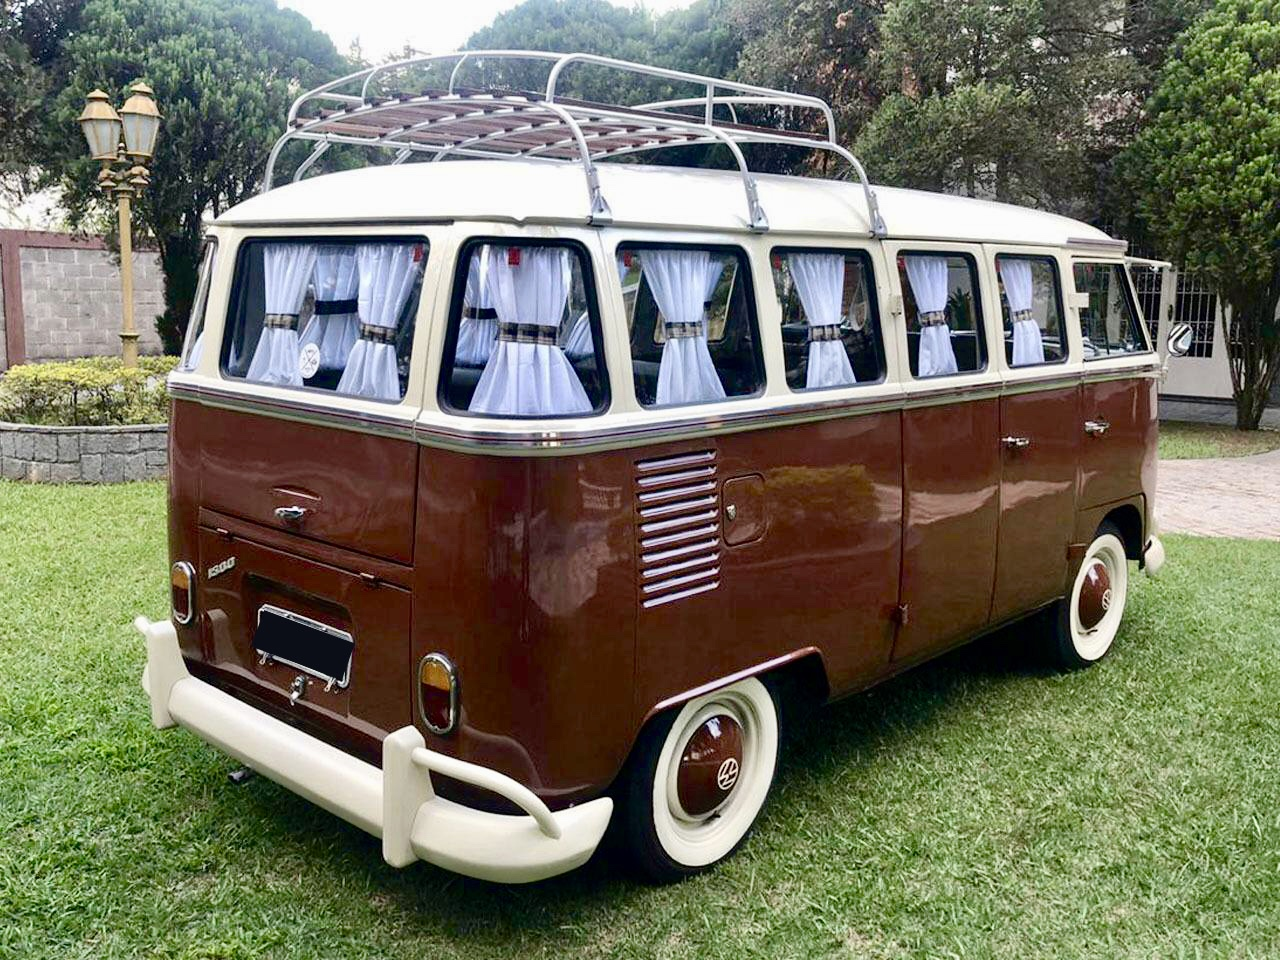 Classic Volkswagen T1 Bus |Maya |The Car'tell Members Only